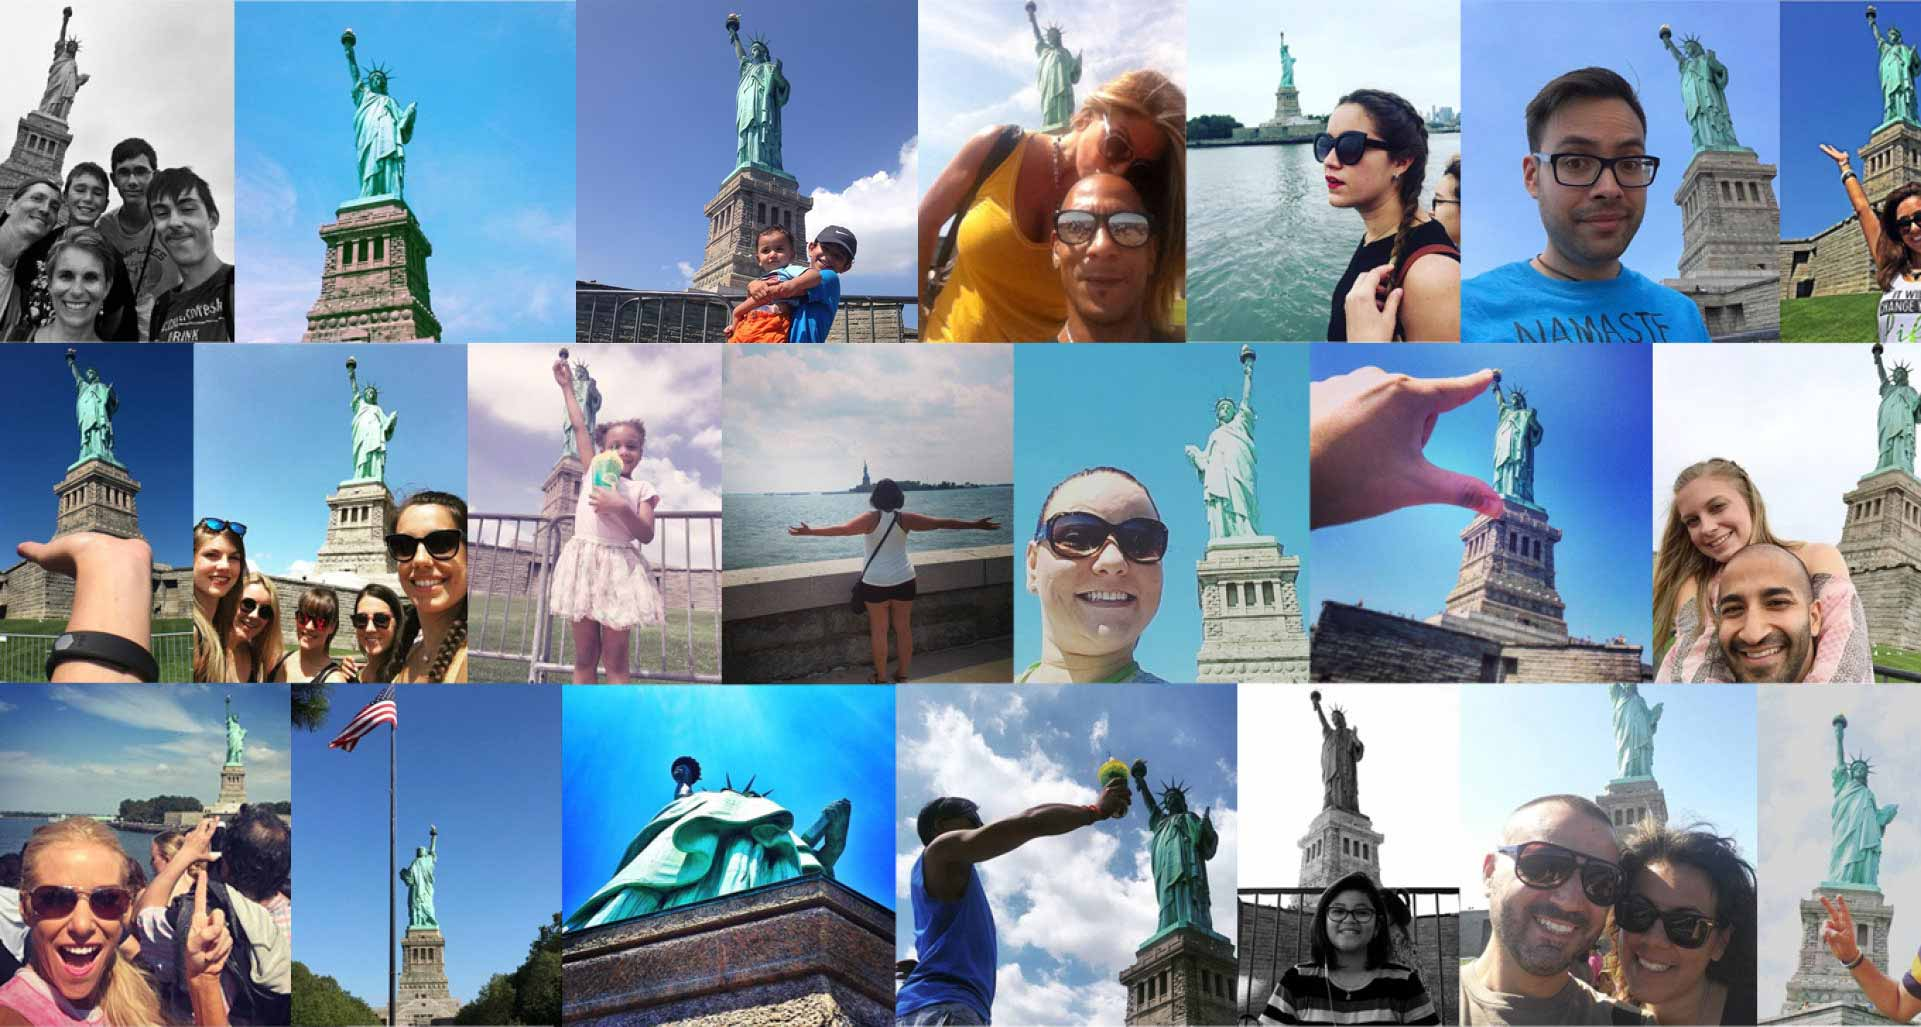 photo collage of tourists at stature of liberty